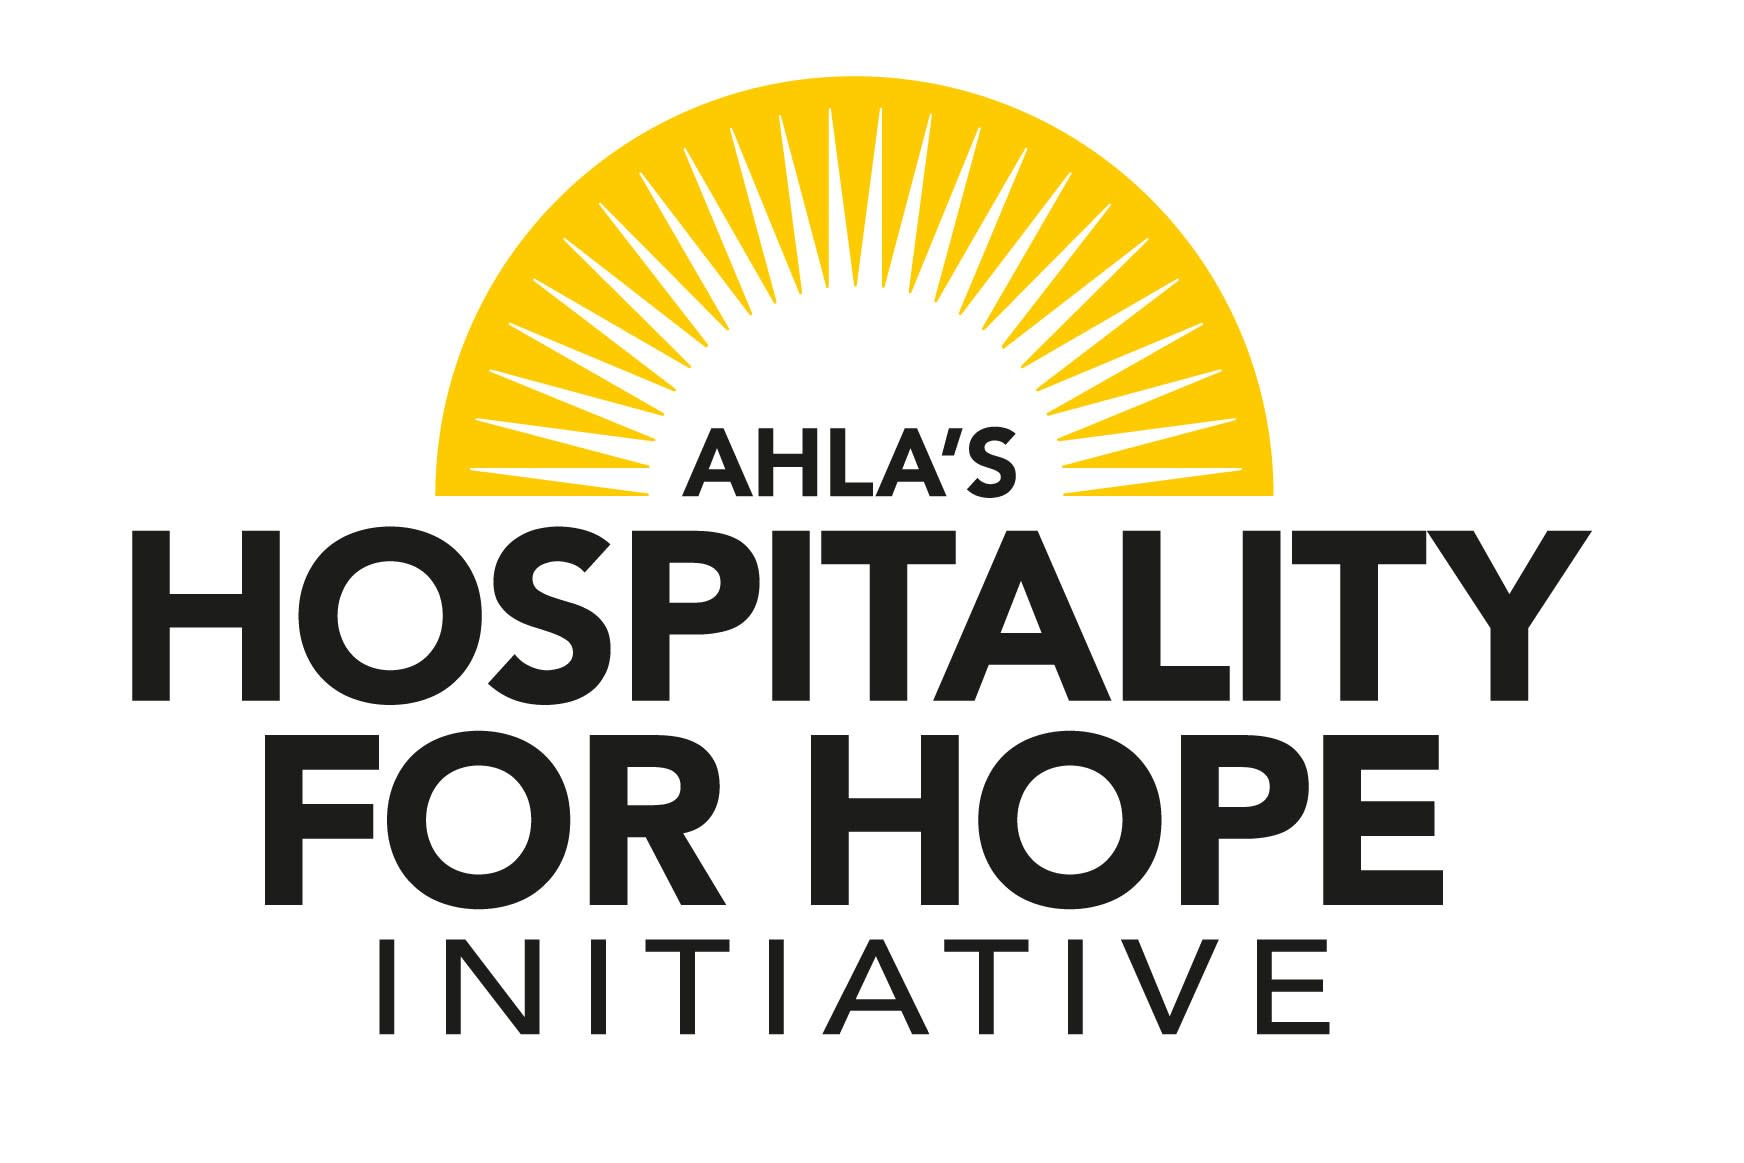 AHLA's Hospitality for Hope Initiative Logo